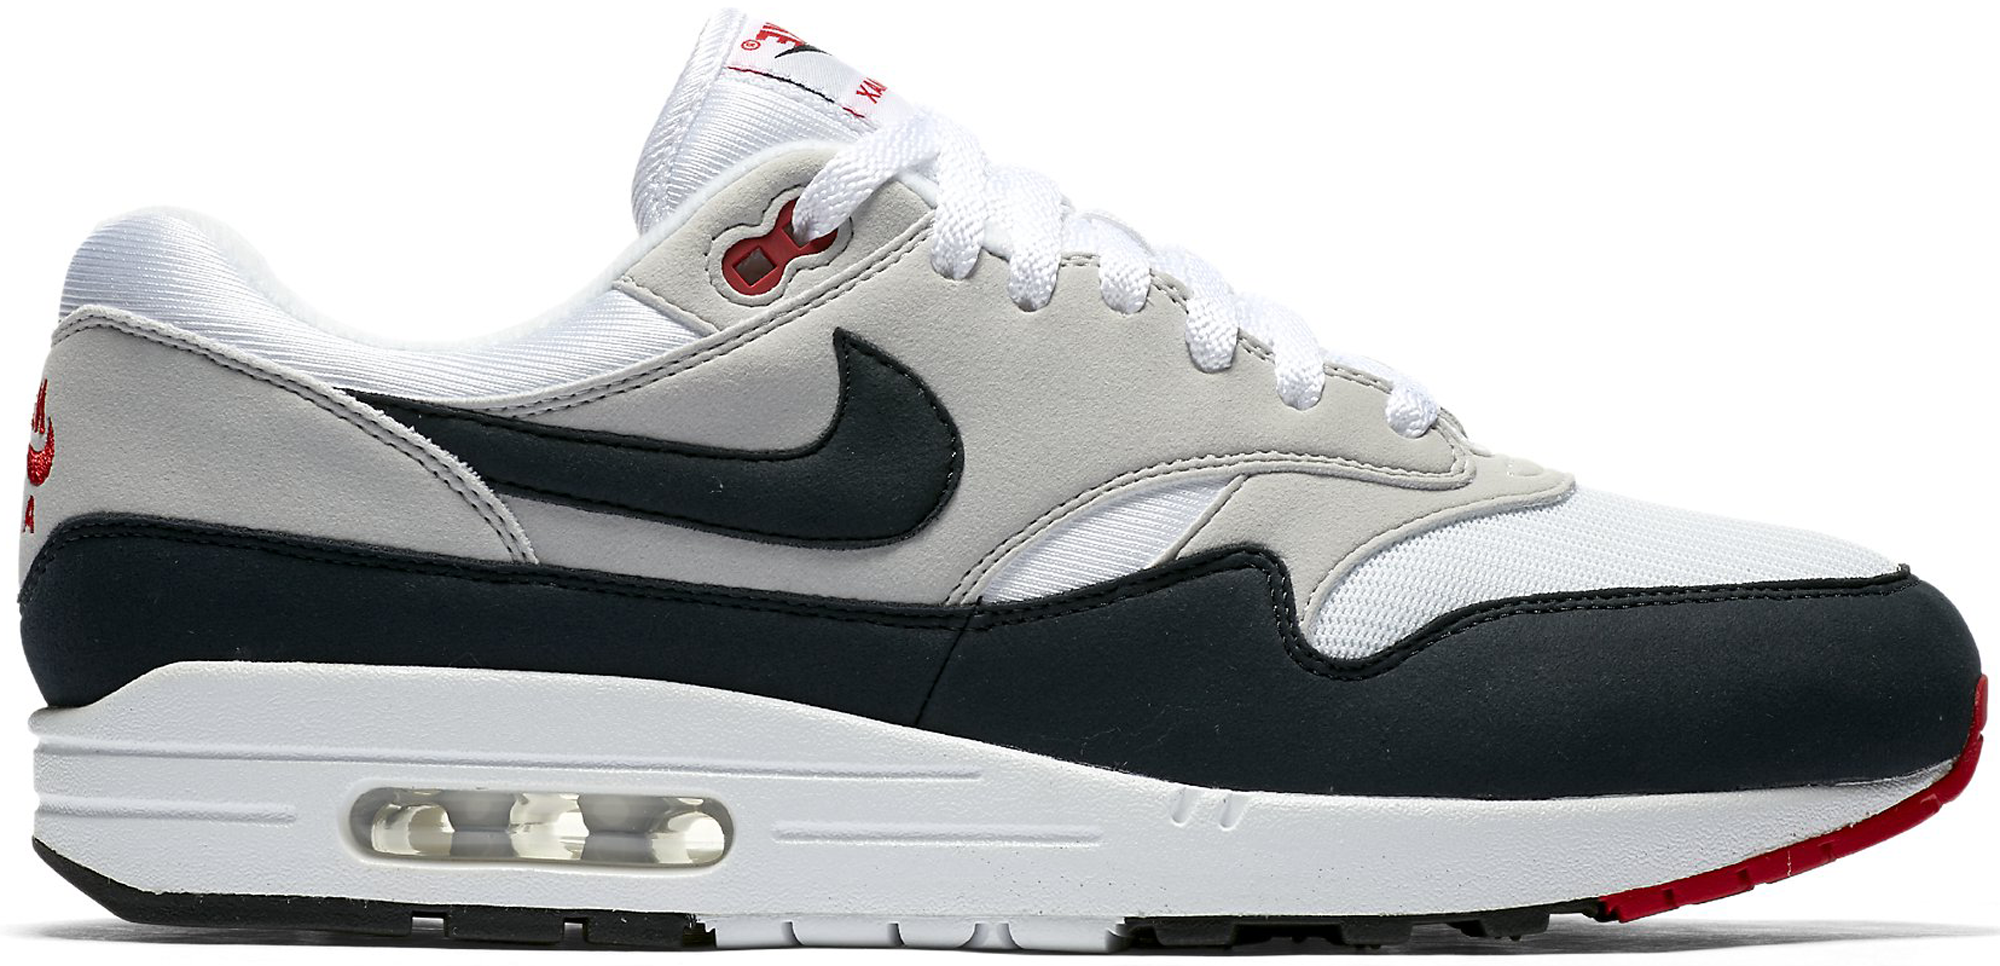 ba63dca00ef91 You can buy these Air Maxes online at StockX today. Got a pair to sell   List them up on the StockX marketplace now. Nike Air Max 1 Anniversary